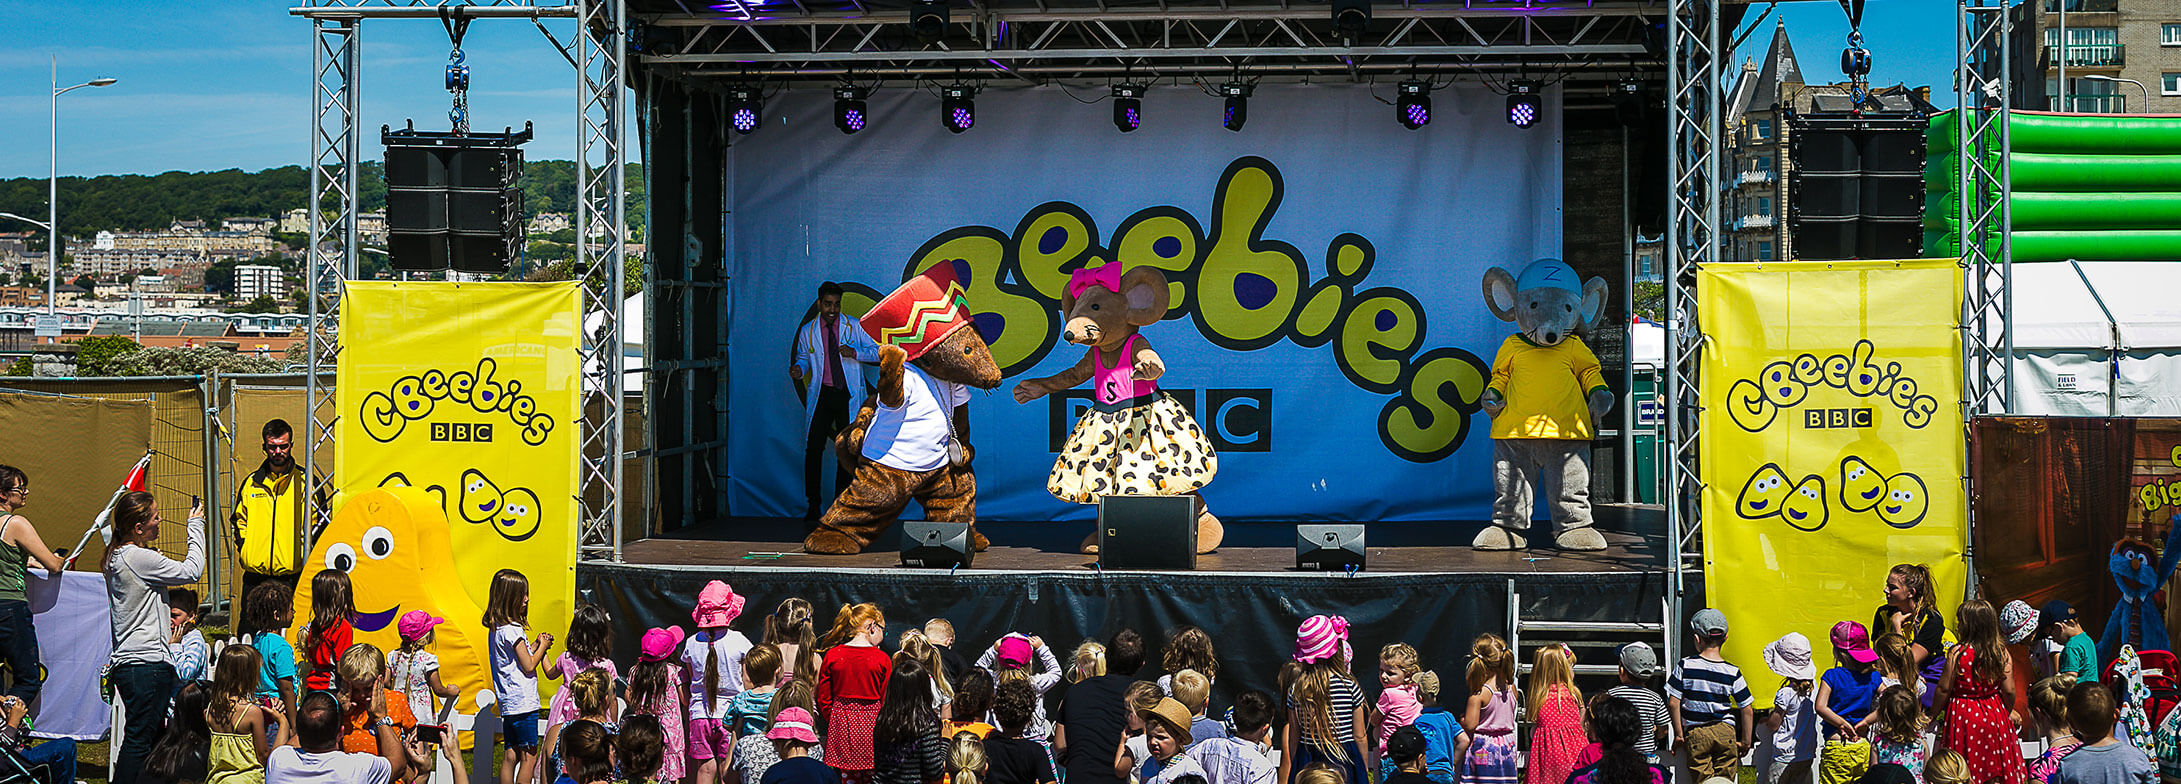 CBeebies stage branding for a children's performance